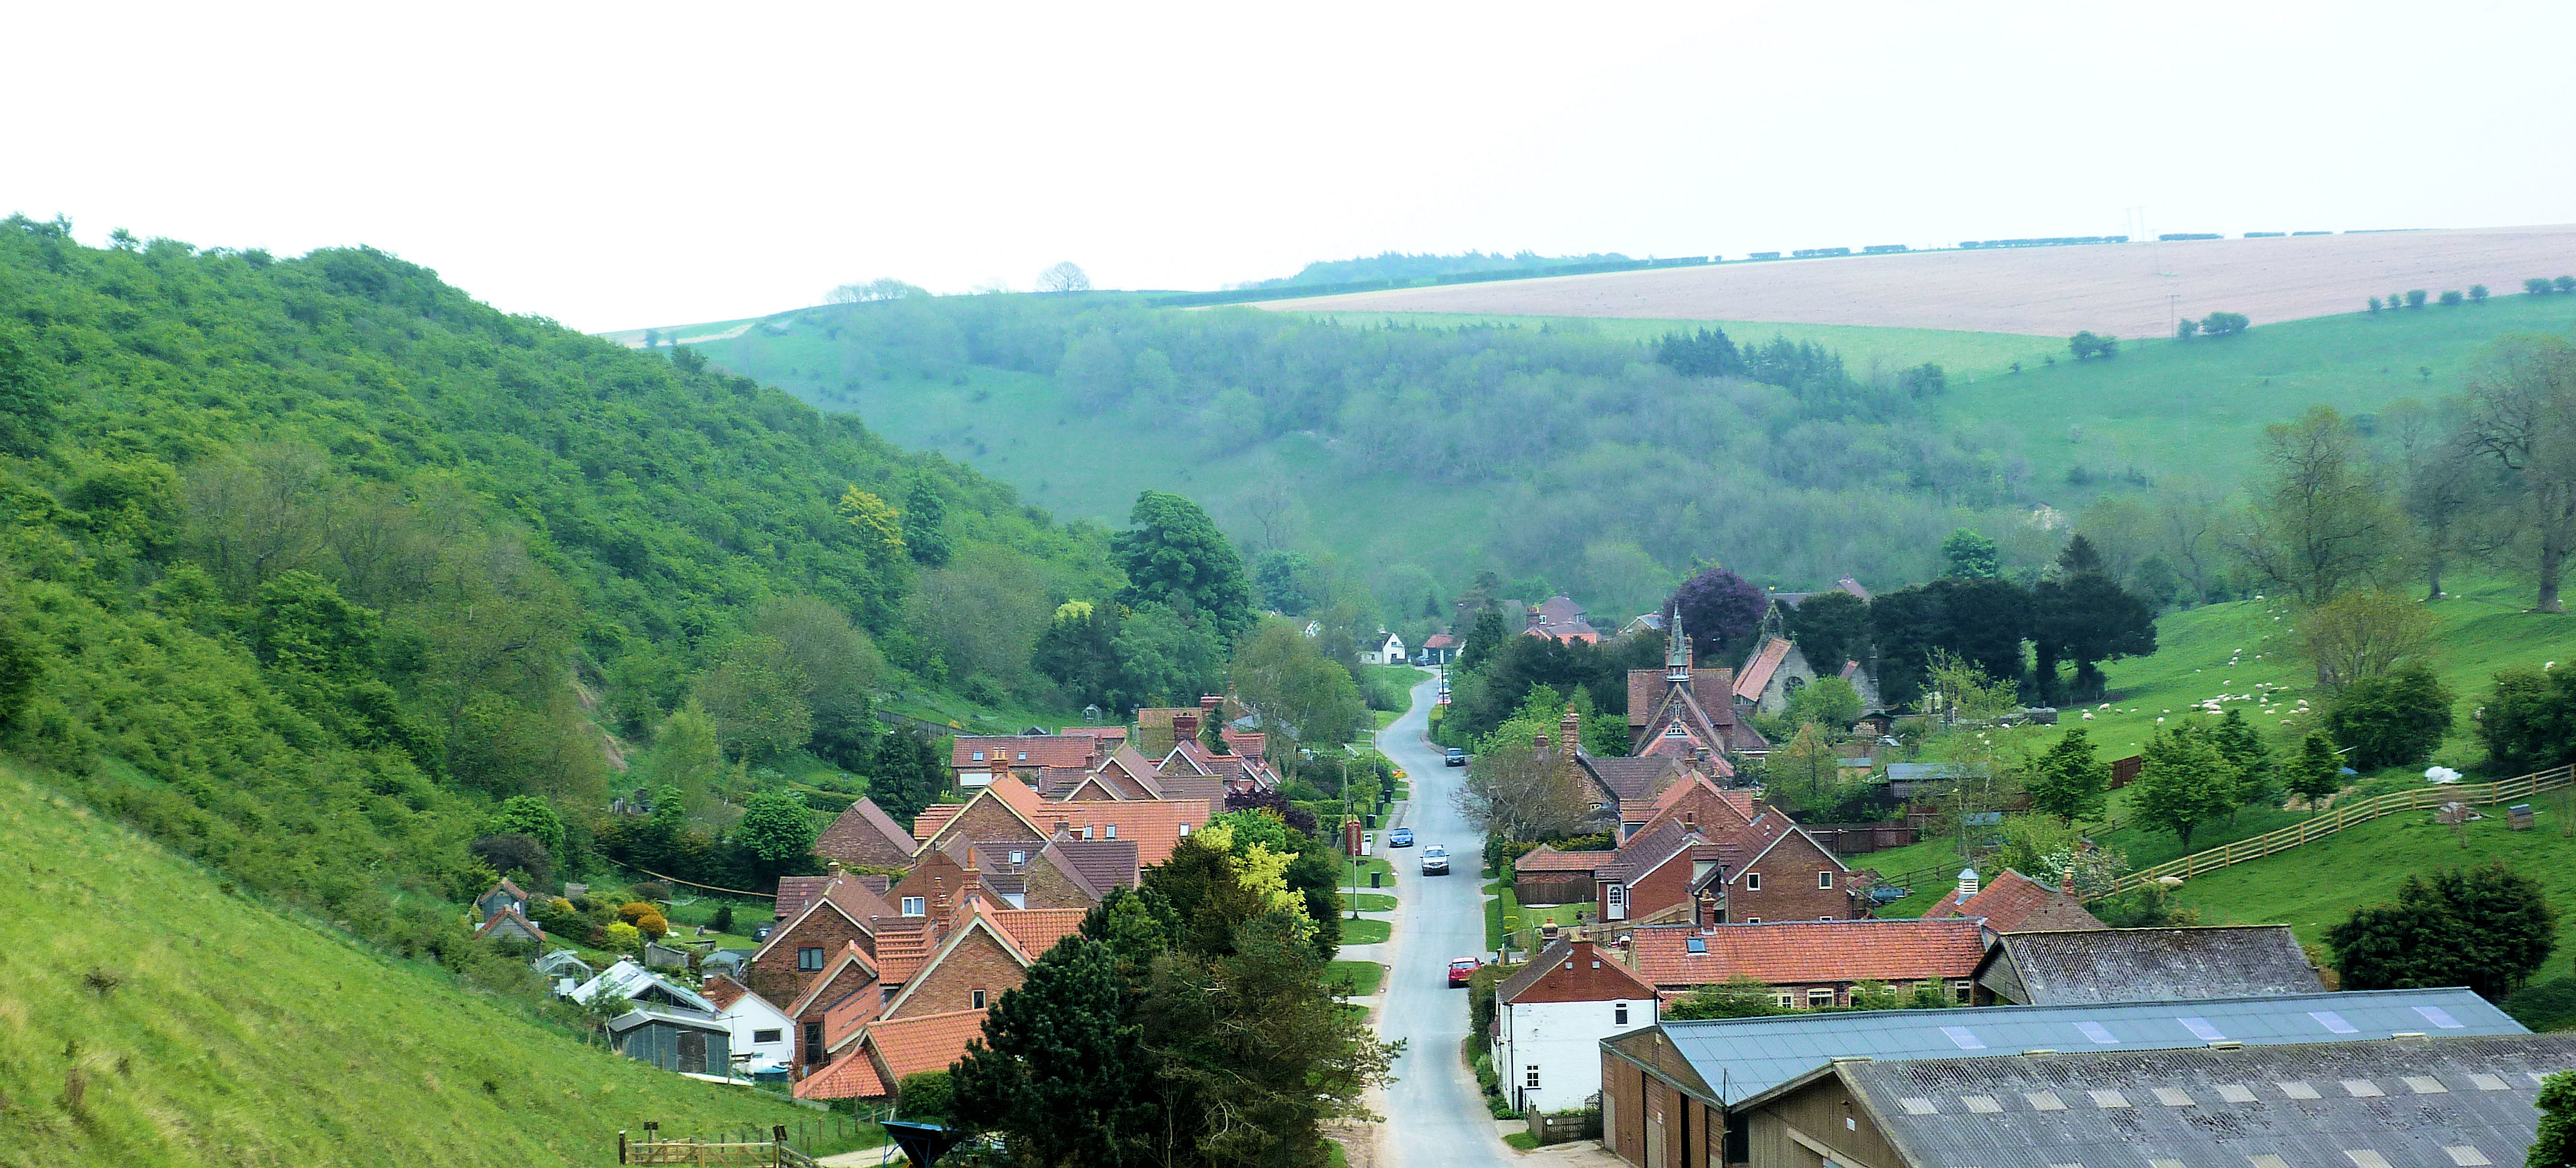 Pretty village of Thixendale